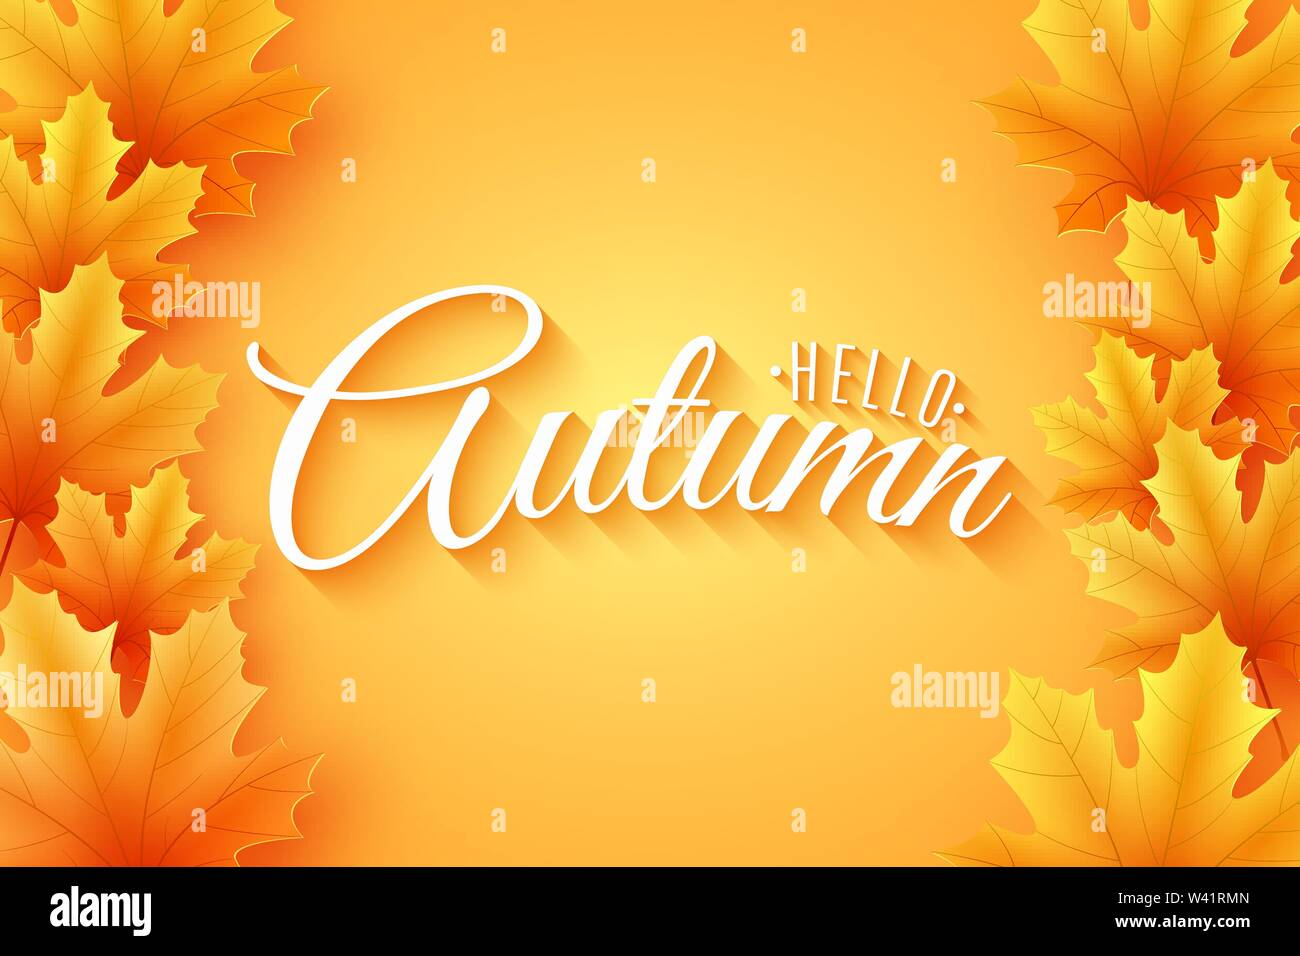 Autumn poster. Maple leaves with lettering. Seasonal banner for your design. Foliage frame. Vector illustration. EPS 10 - Stock Image